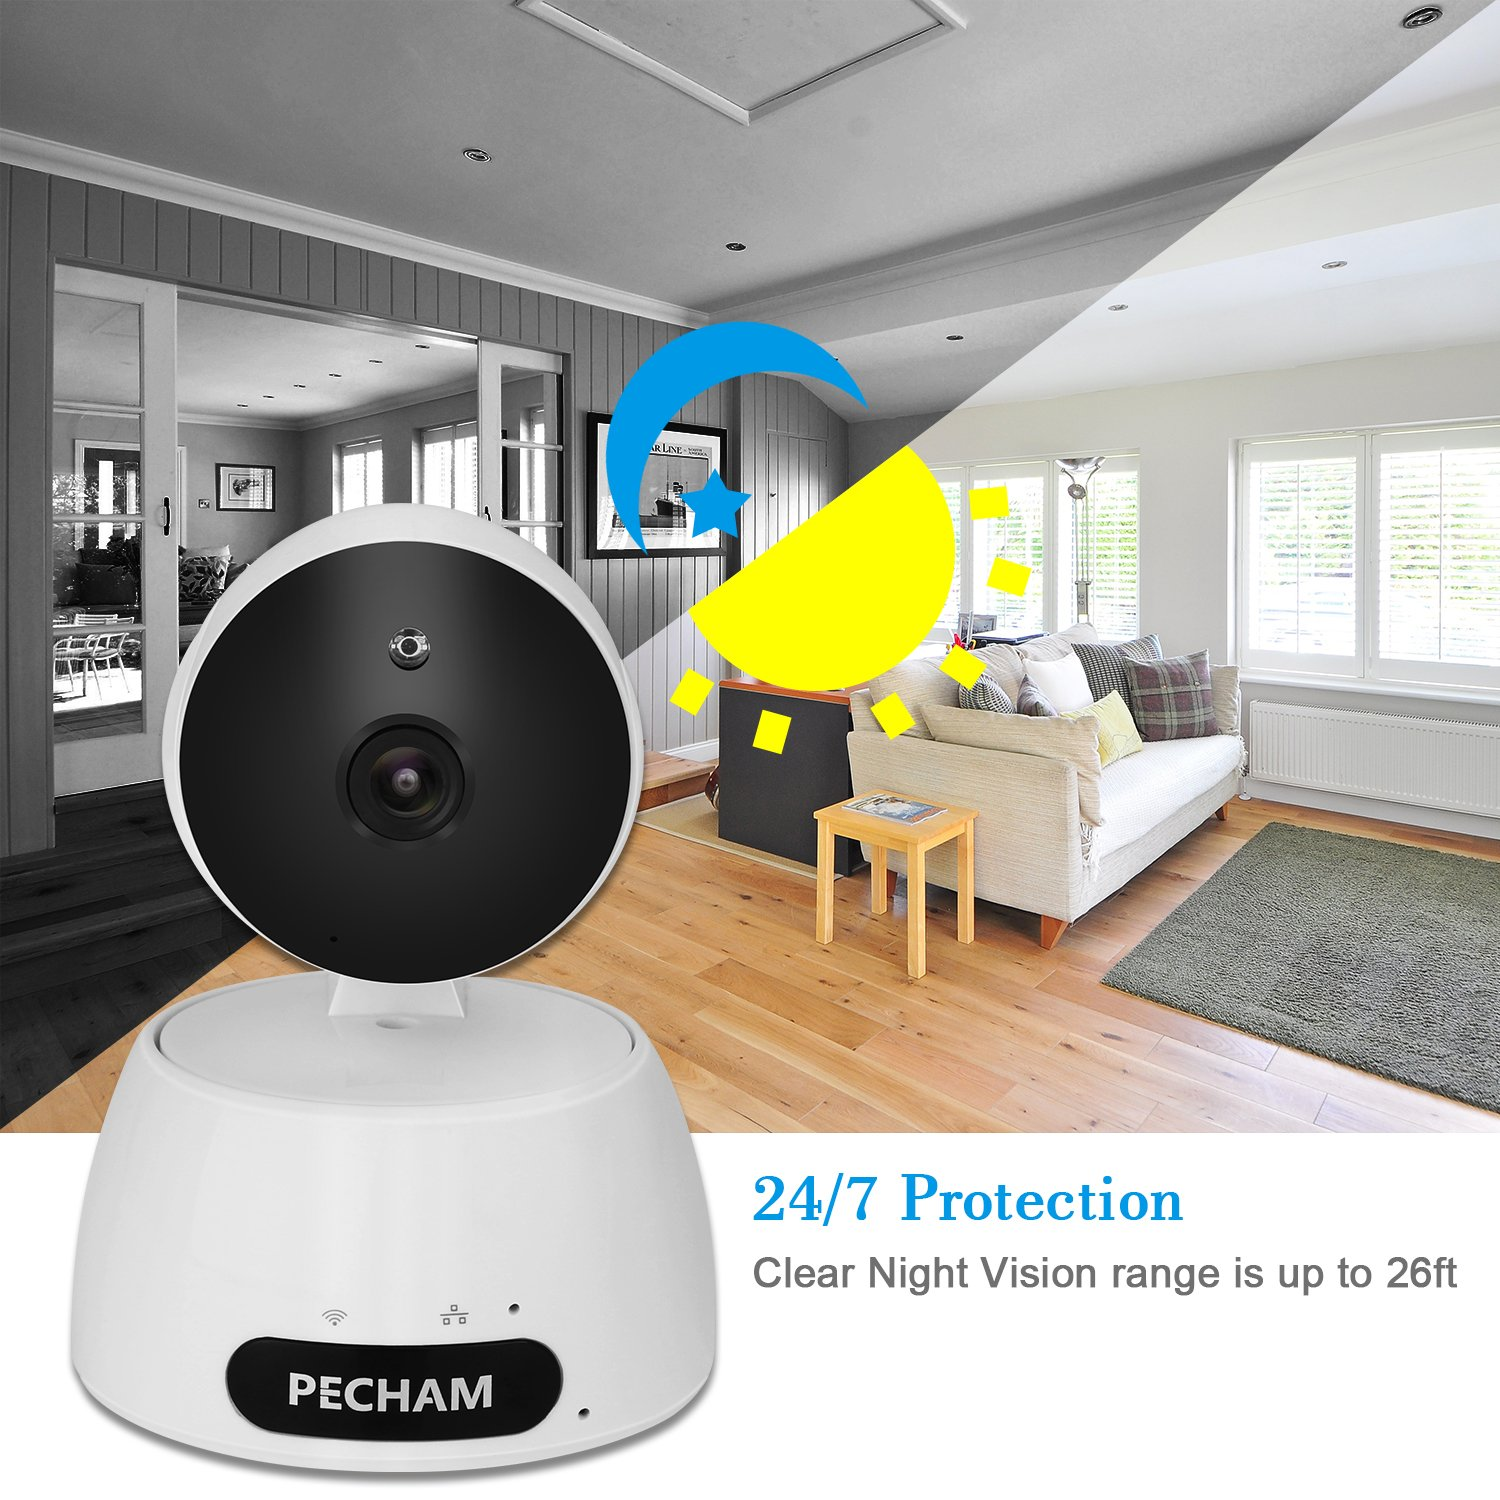 PECHAM 960P HD WiFi Security Camera, Wireless IP Surveillance Camera with Motion Detection, 2 Way Audio, Baby and Home Monitor, Control & Remote Viewing by Smartphone App for iOS and Android